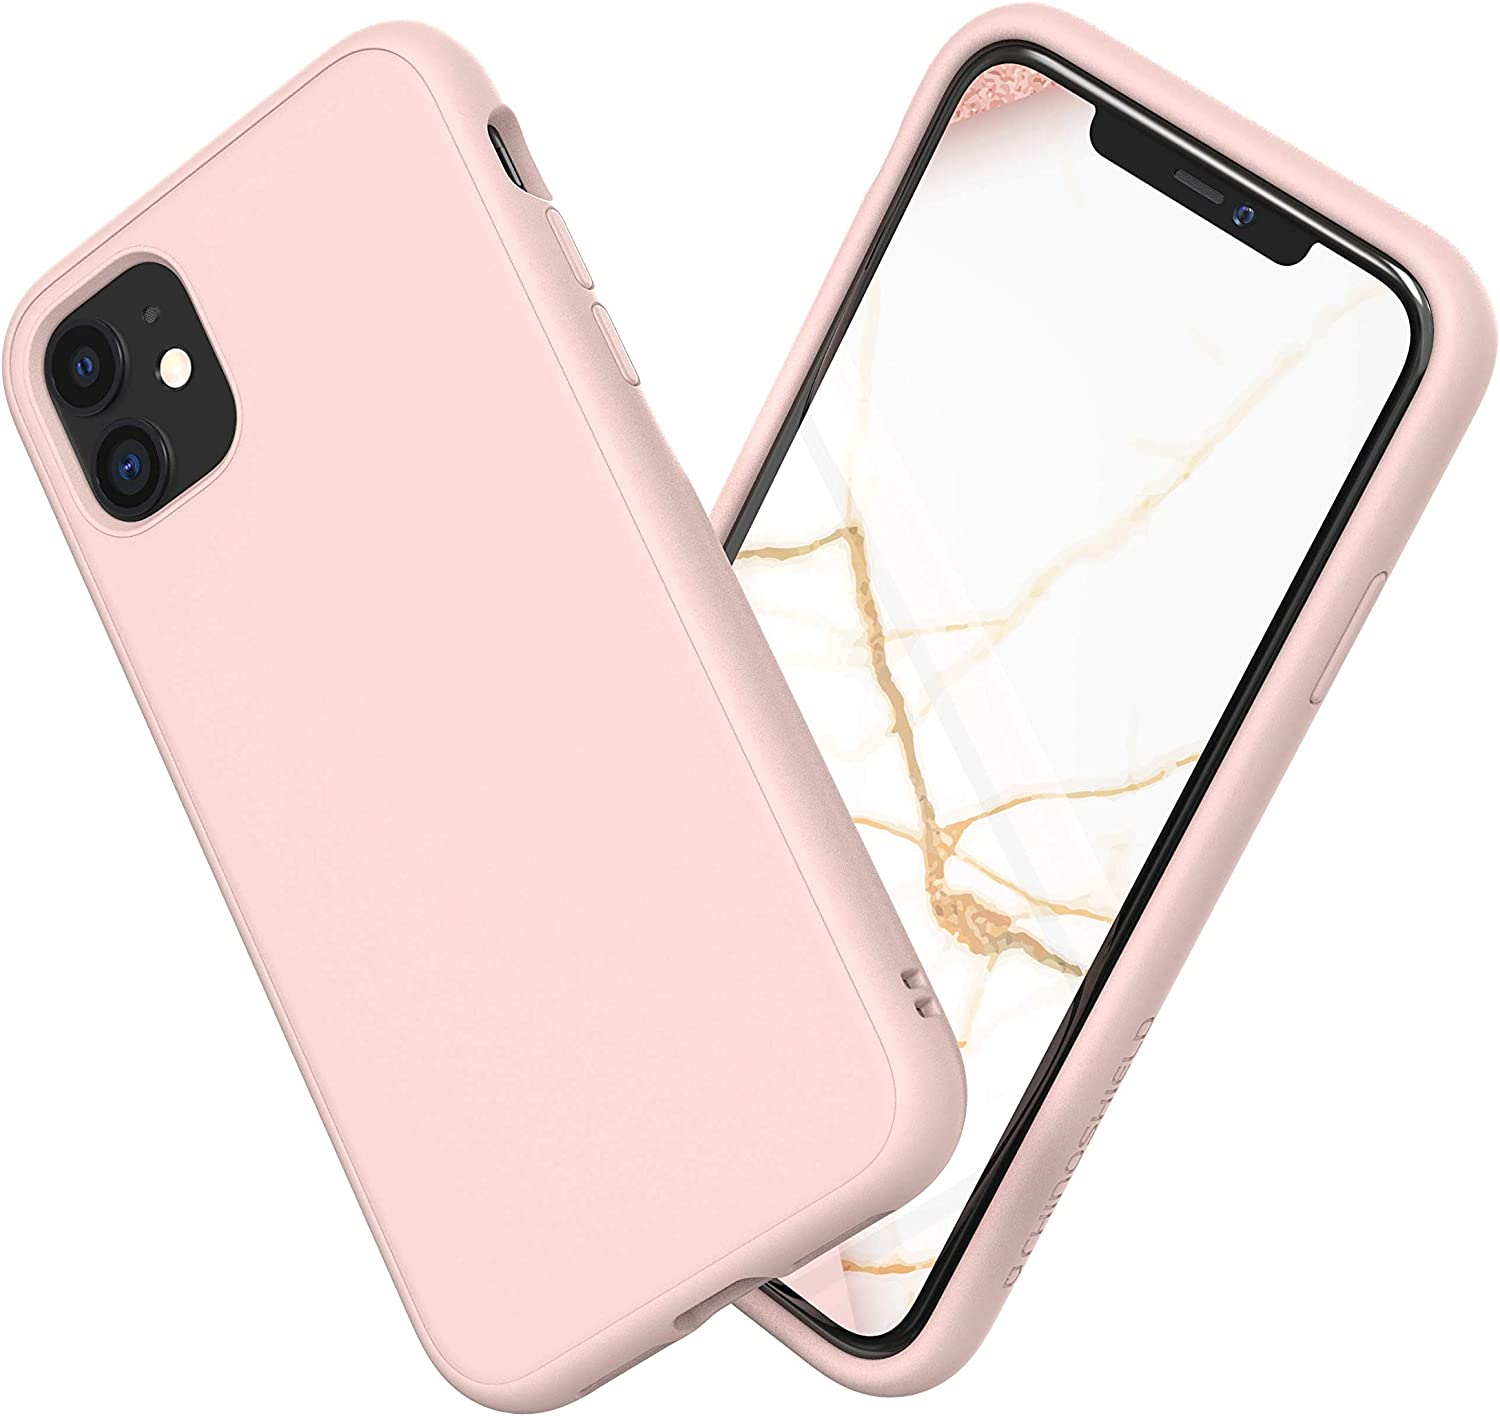 Amazon Com Rhinoshield Case Compatible With Iphone 11 Solidsuit Shock Absorbent Slim Design Protective Cover With Premium Matte Finish 3 5m 11ft Drop Protection Blush Pink